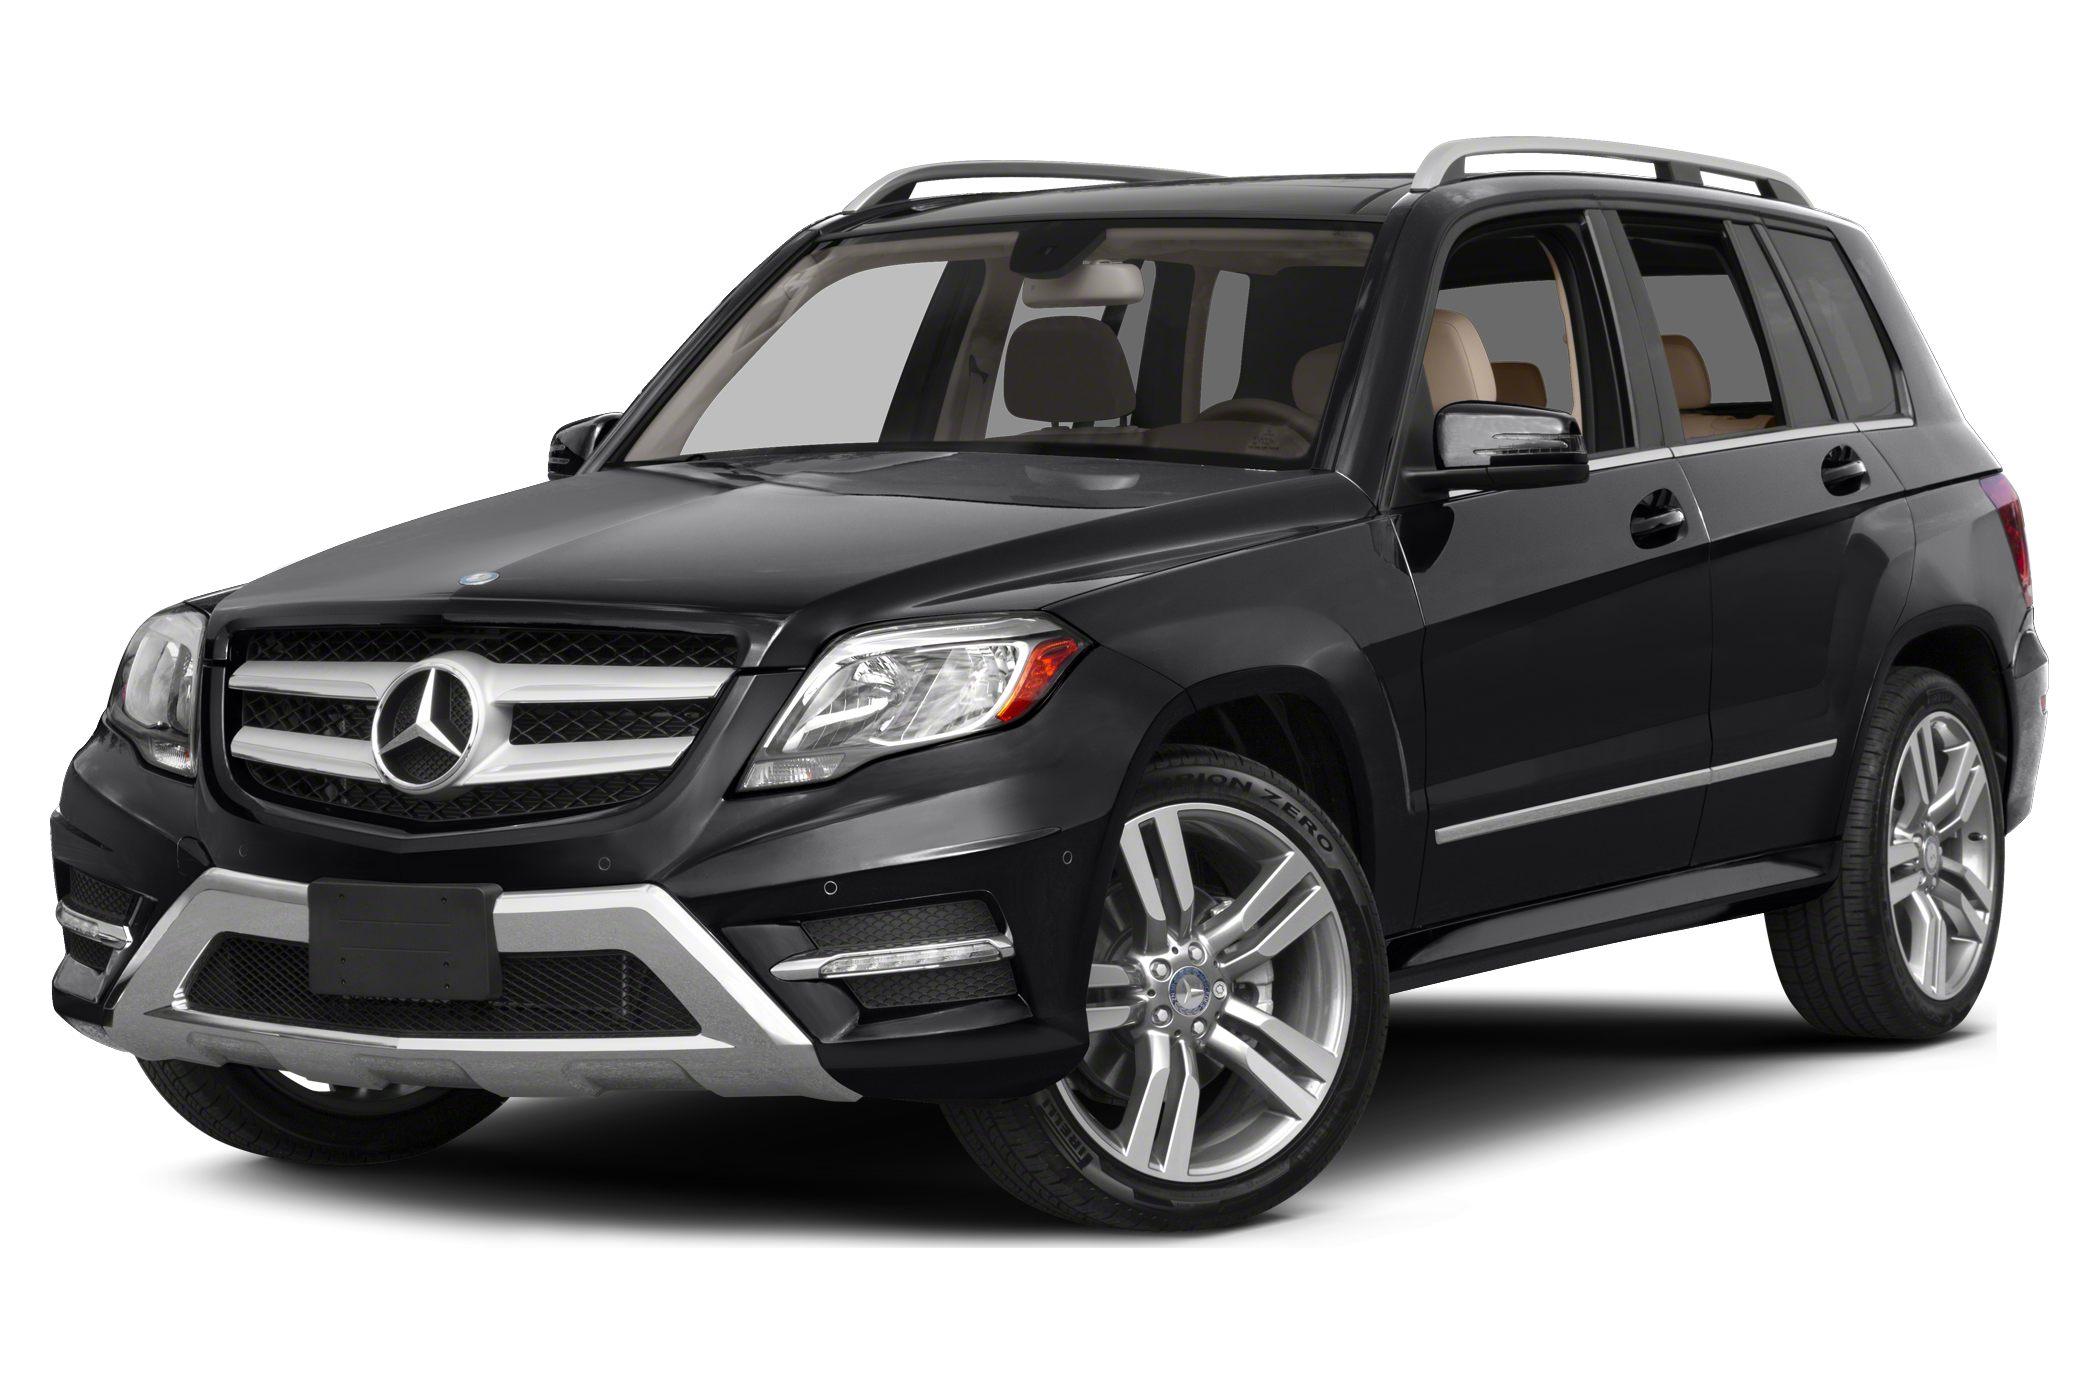 2013 Mercedes-Benz GLK-Class GLK350 4MATIC SUV for sale in Morrow for $29,995 with 37,184 miles